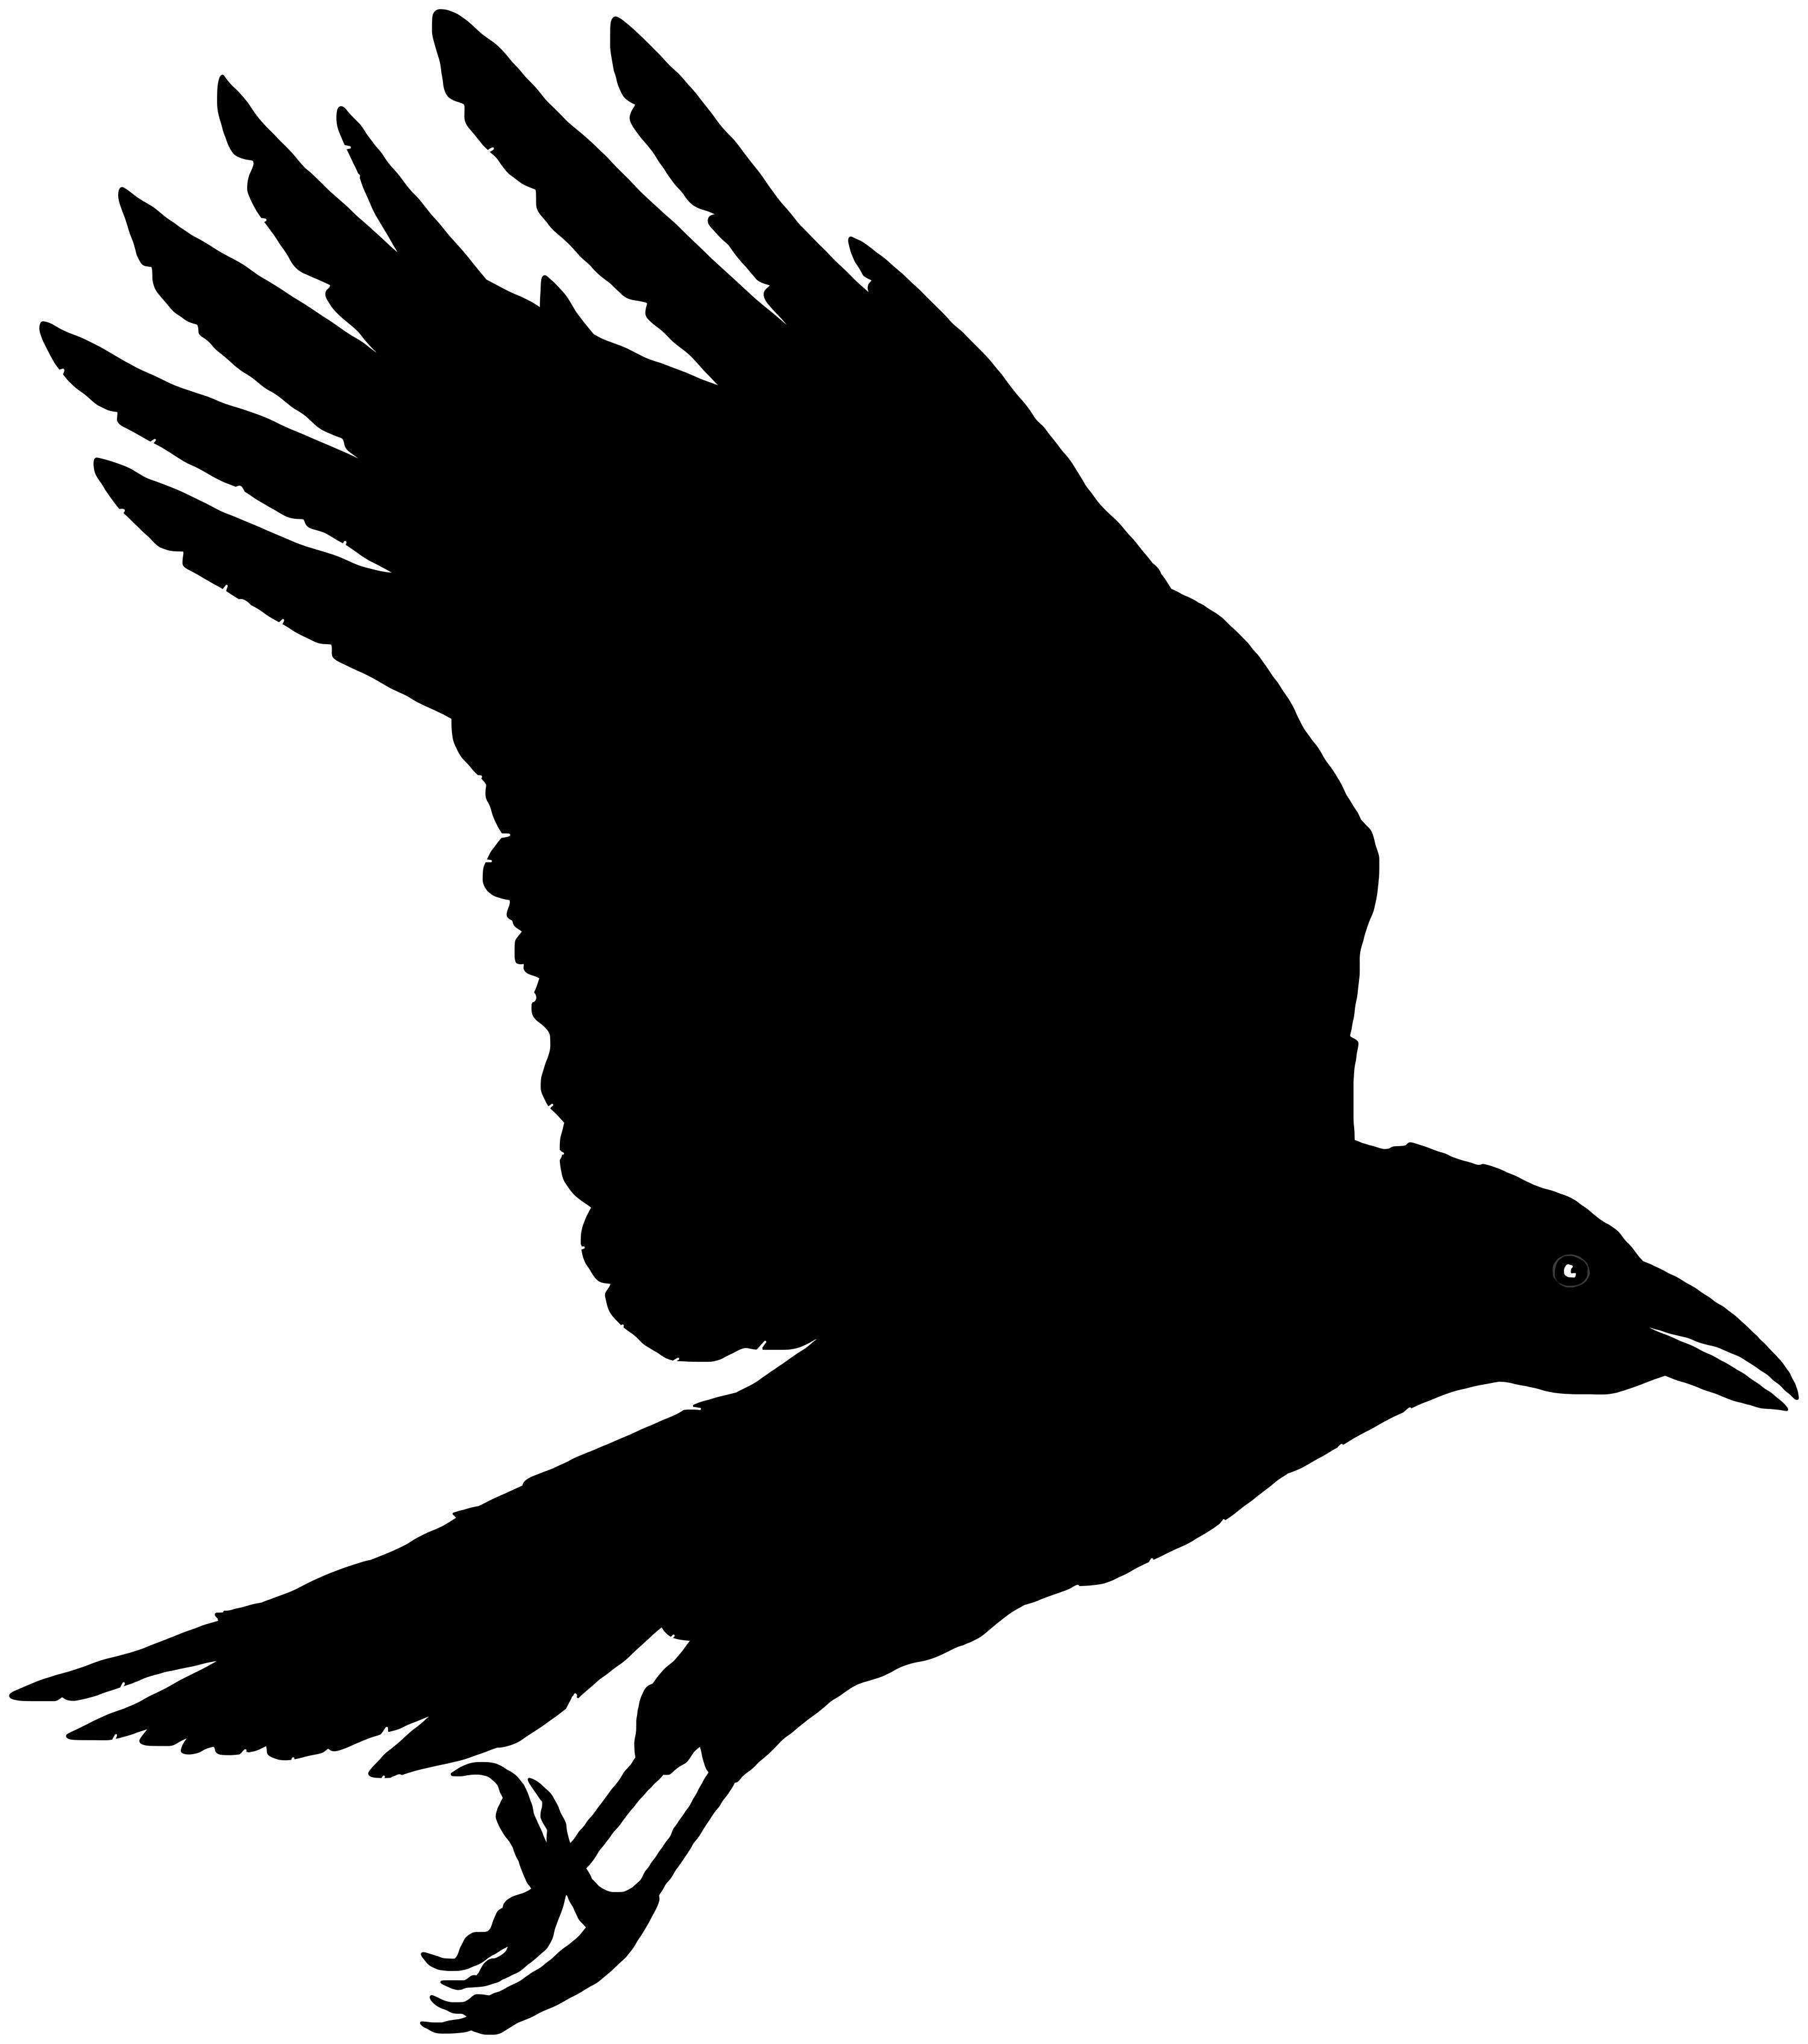 Flying crow clipart 4 » Clipart Portal.